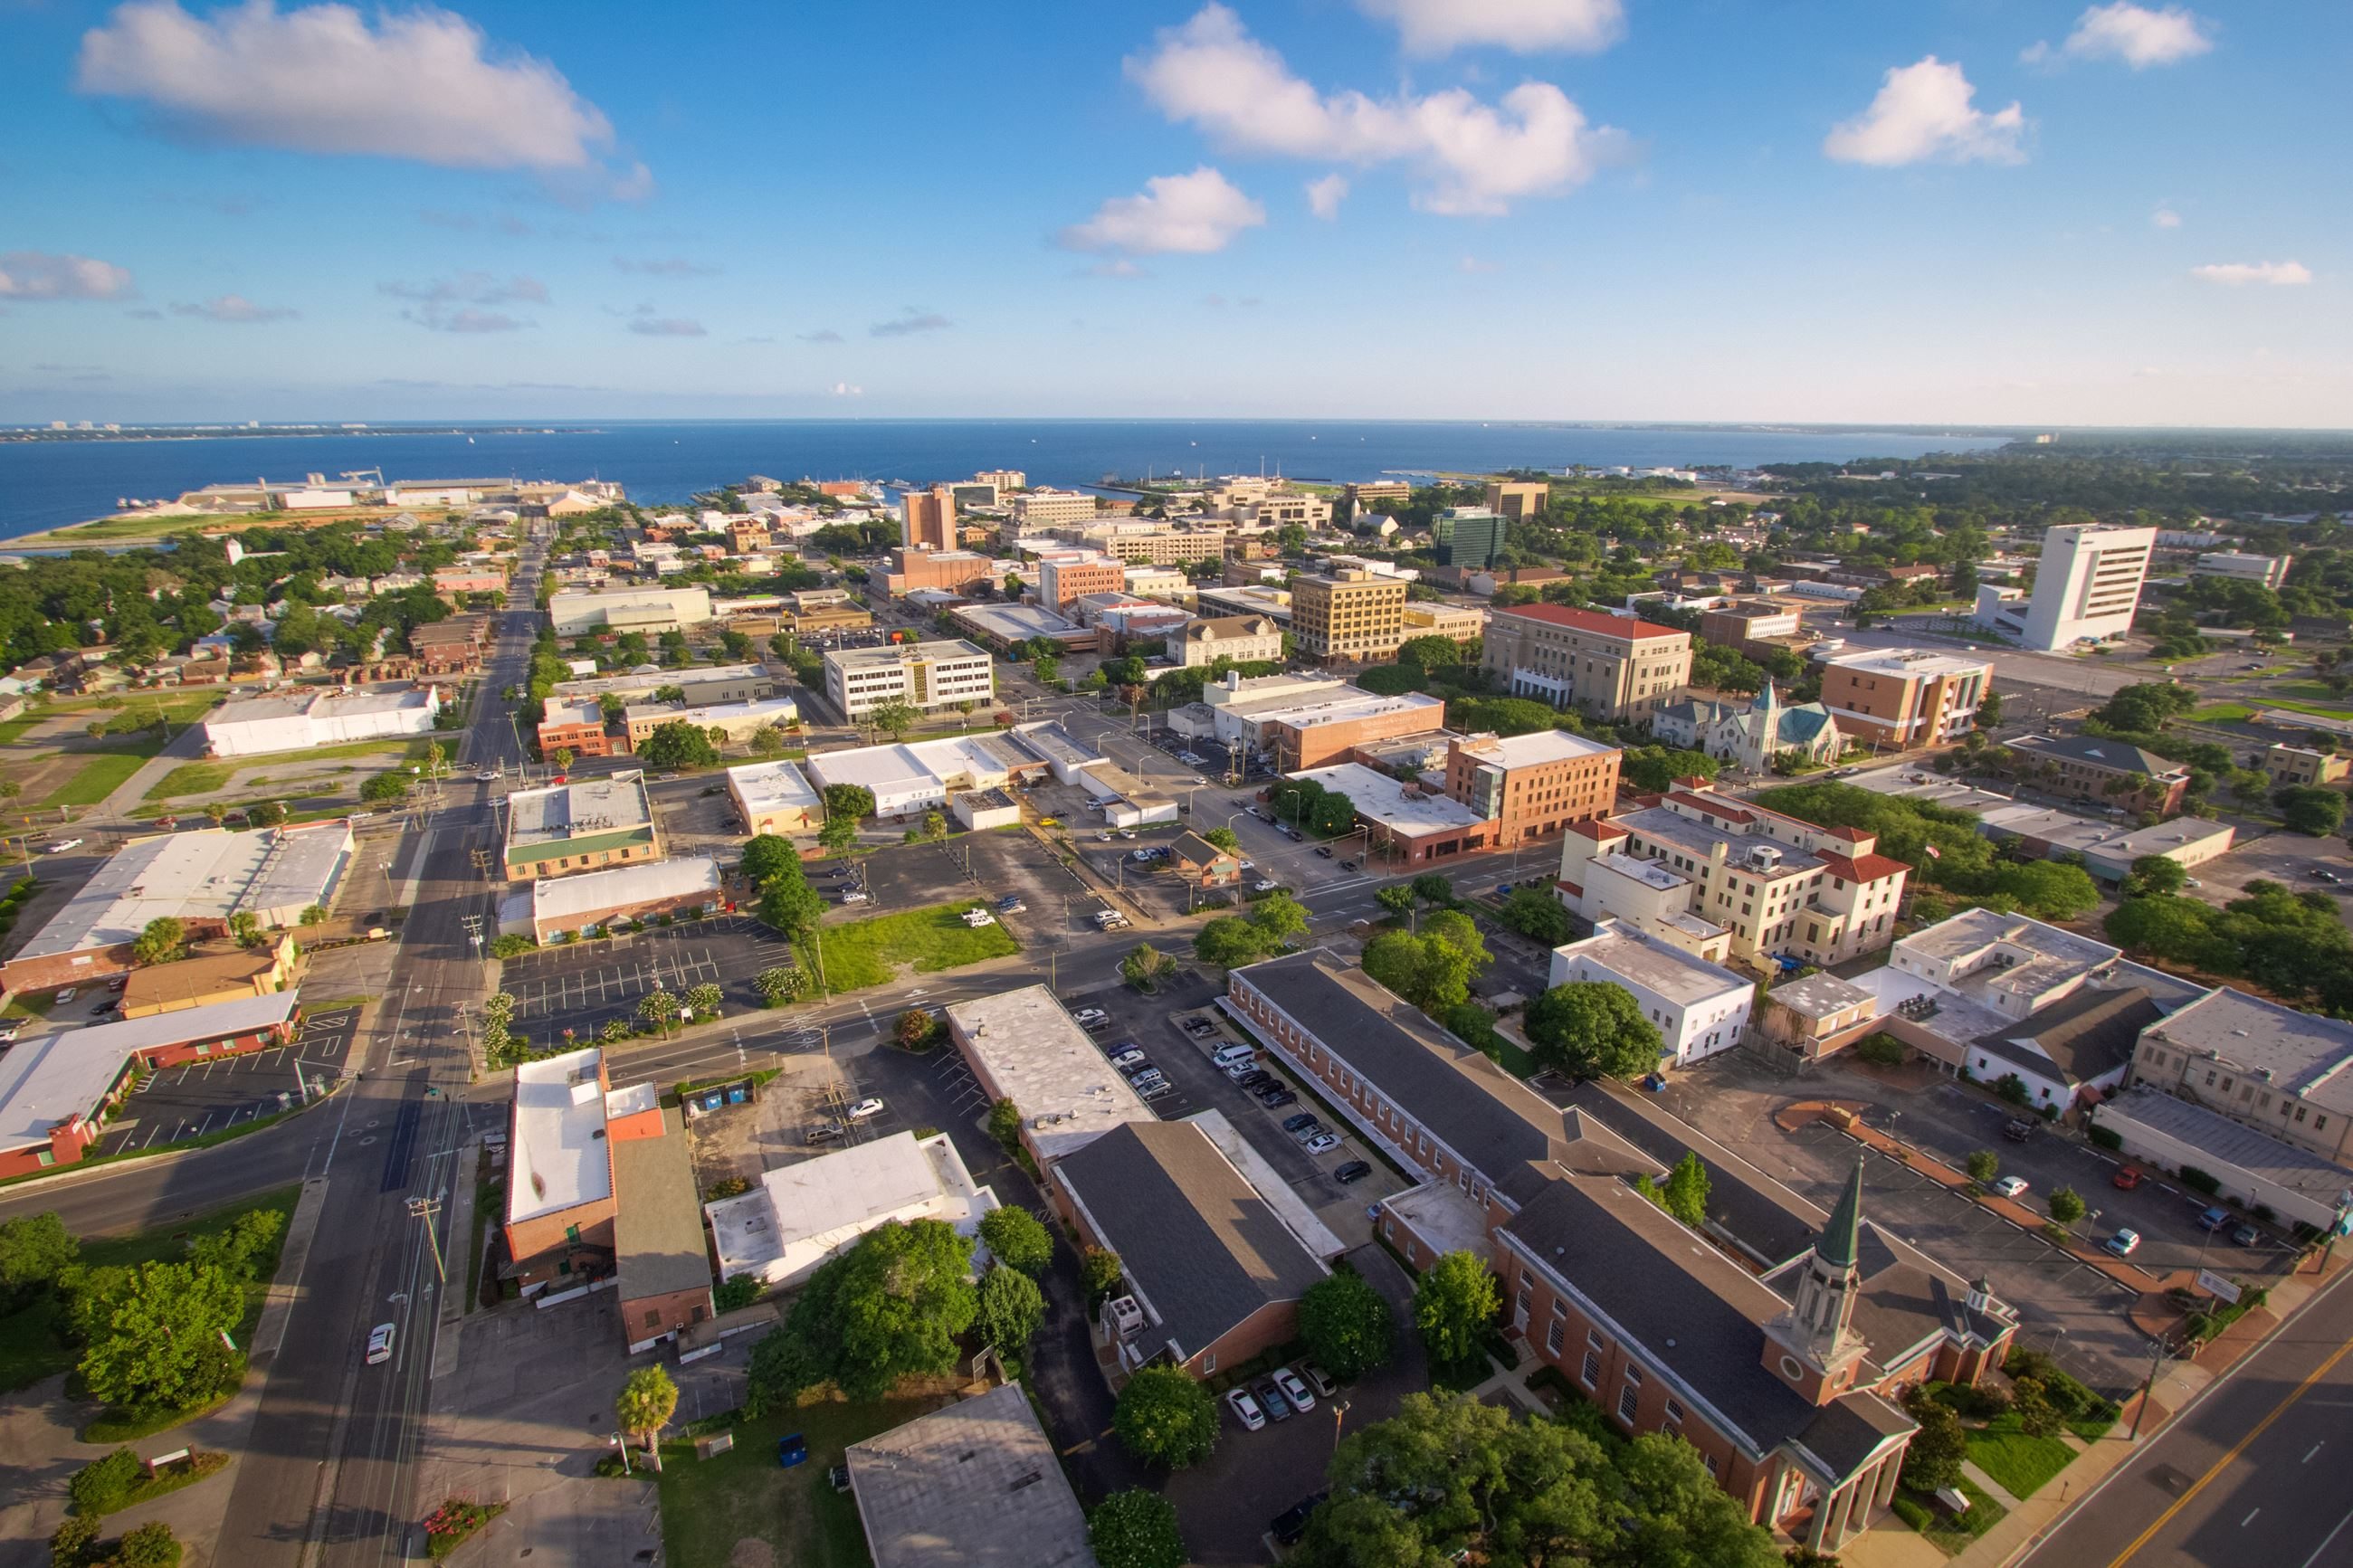 Aerial of businesses and buildings in downtown Pensacola with bay in background